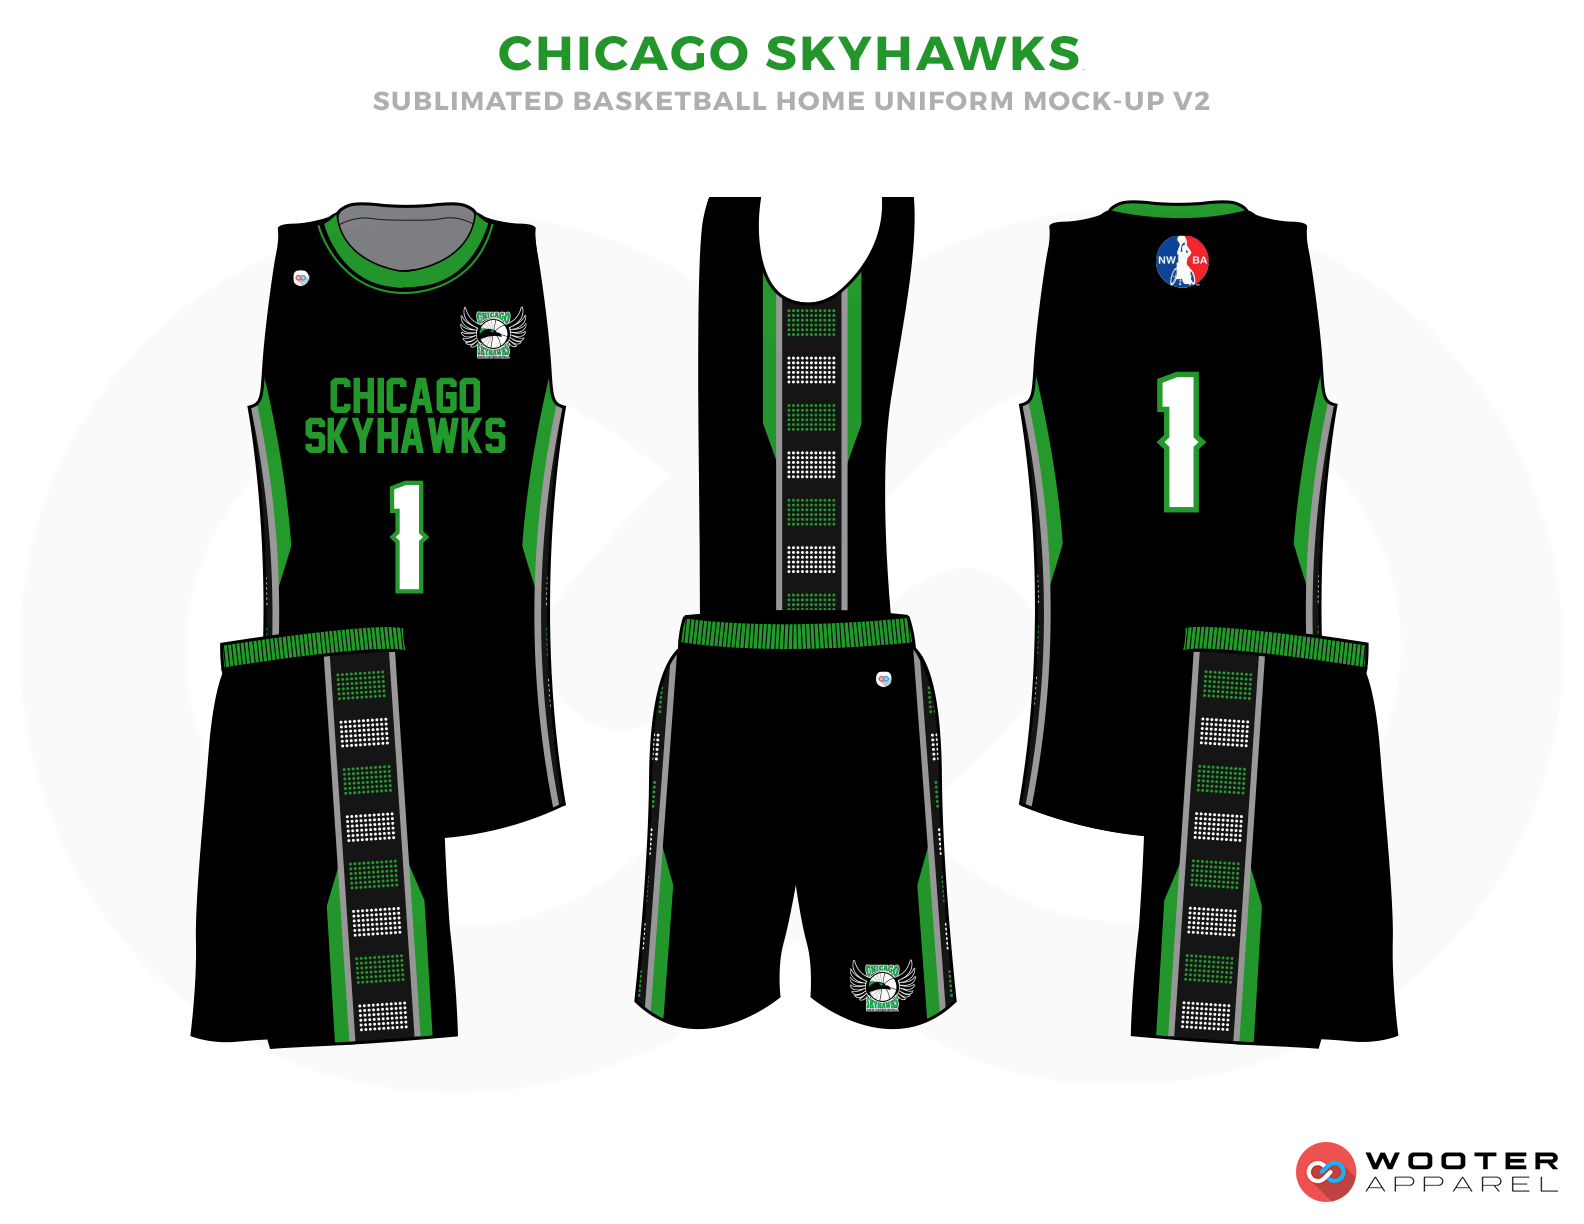 CHICAGO SKYHAWKS Black Green Grey and White Basketball Uniforms, Jersey and Shorts